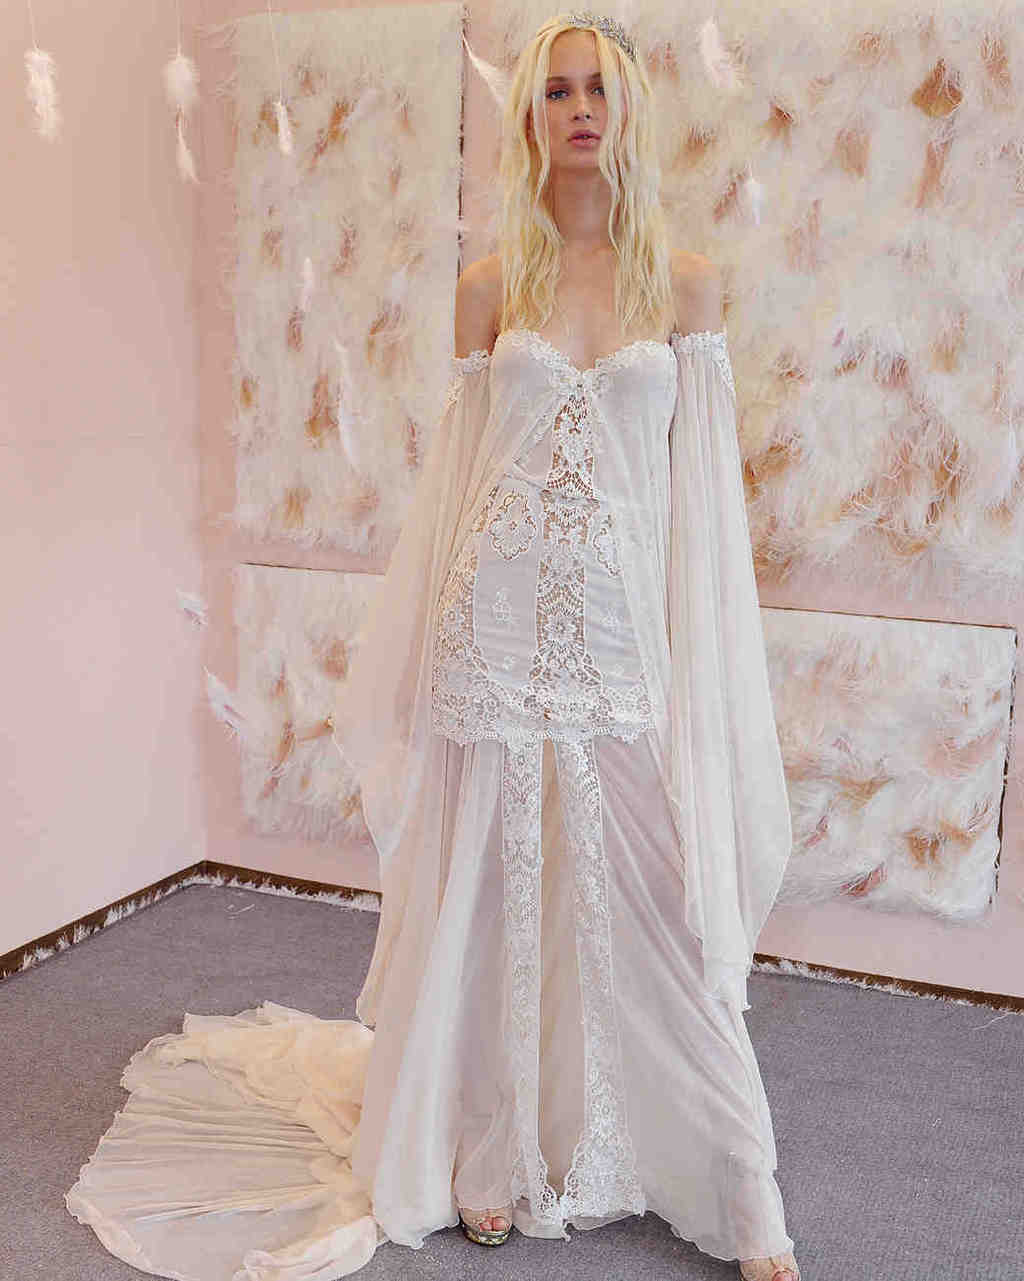 Galia-Lahav-gala-wedding-dress-fall2017-6203351-002_vert